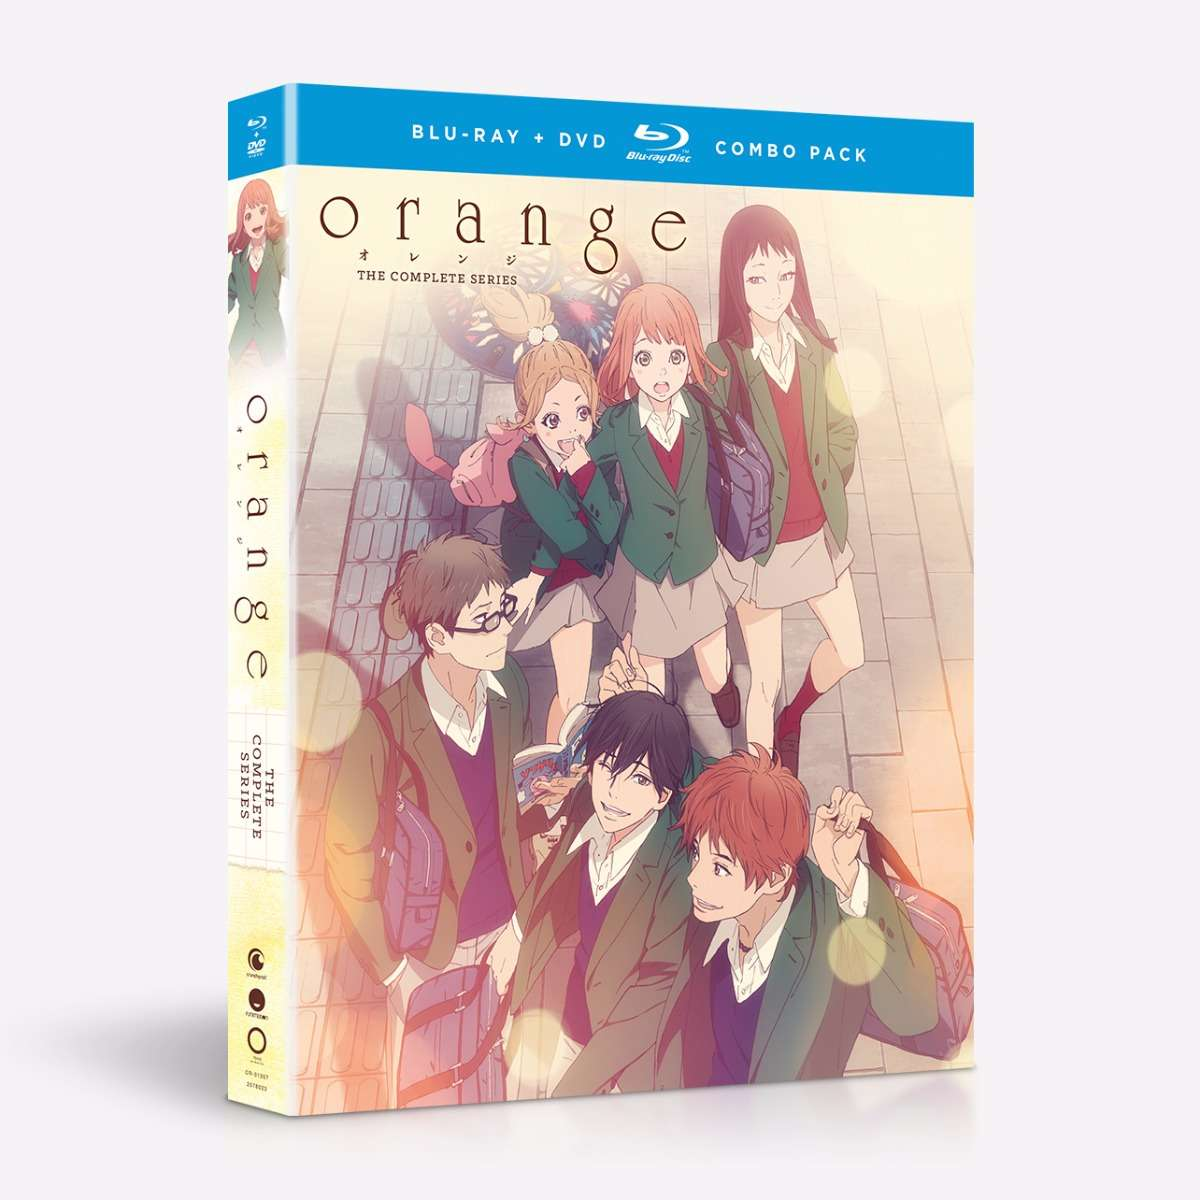 Orange Blu-ray/DVD 704400013072